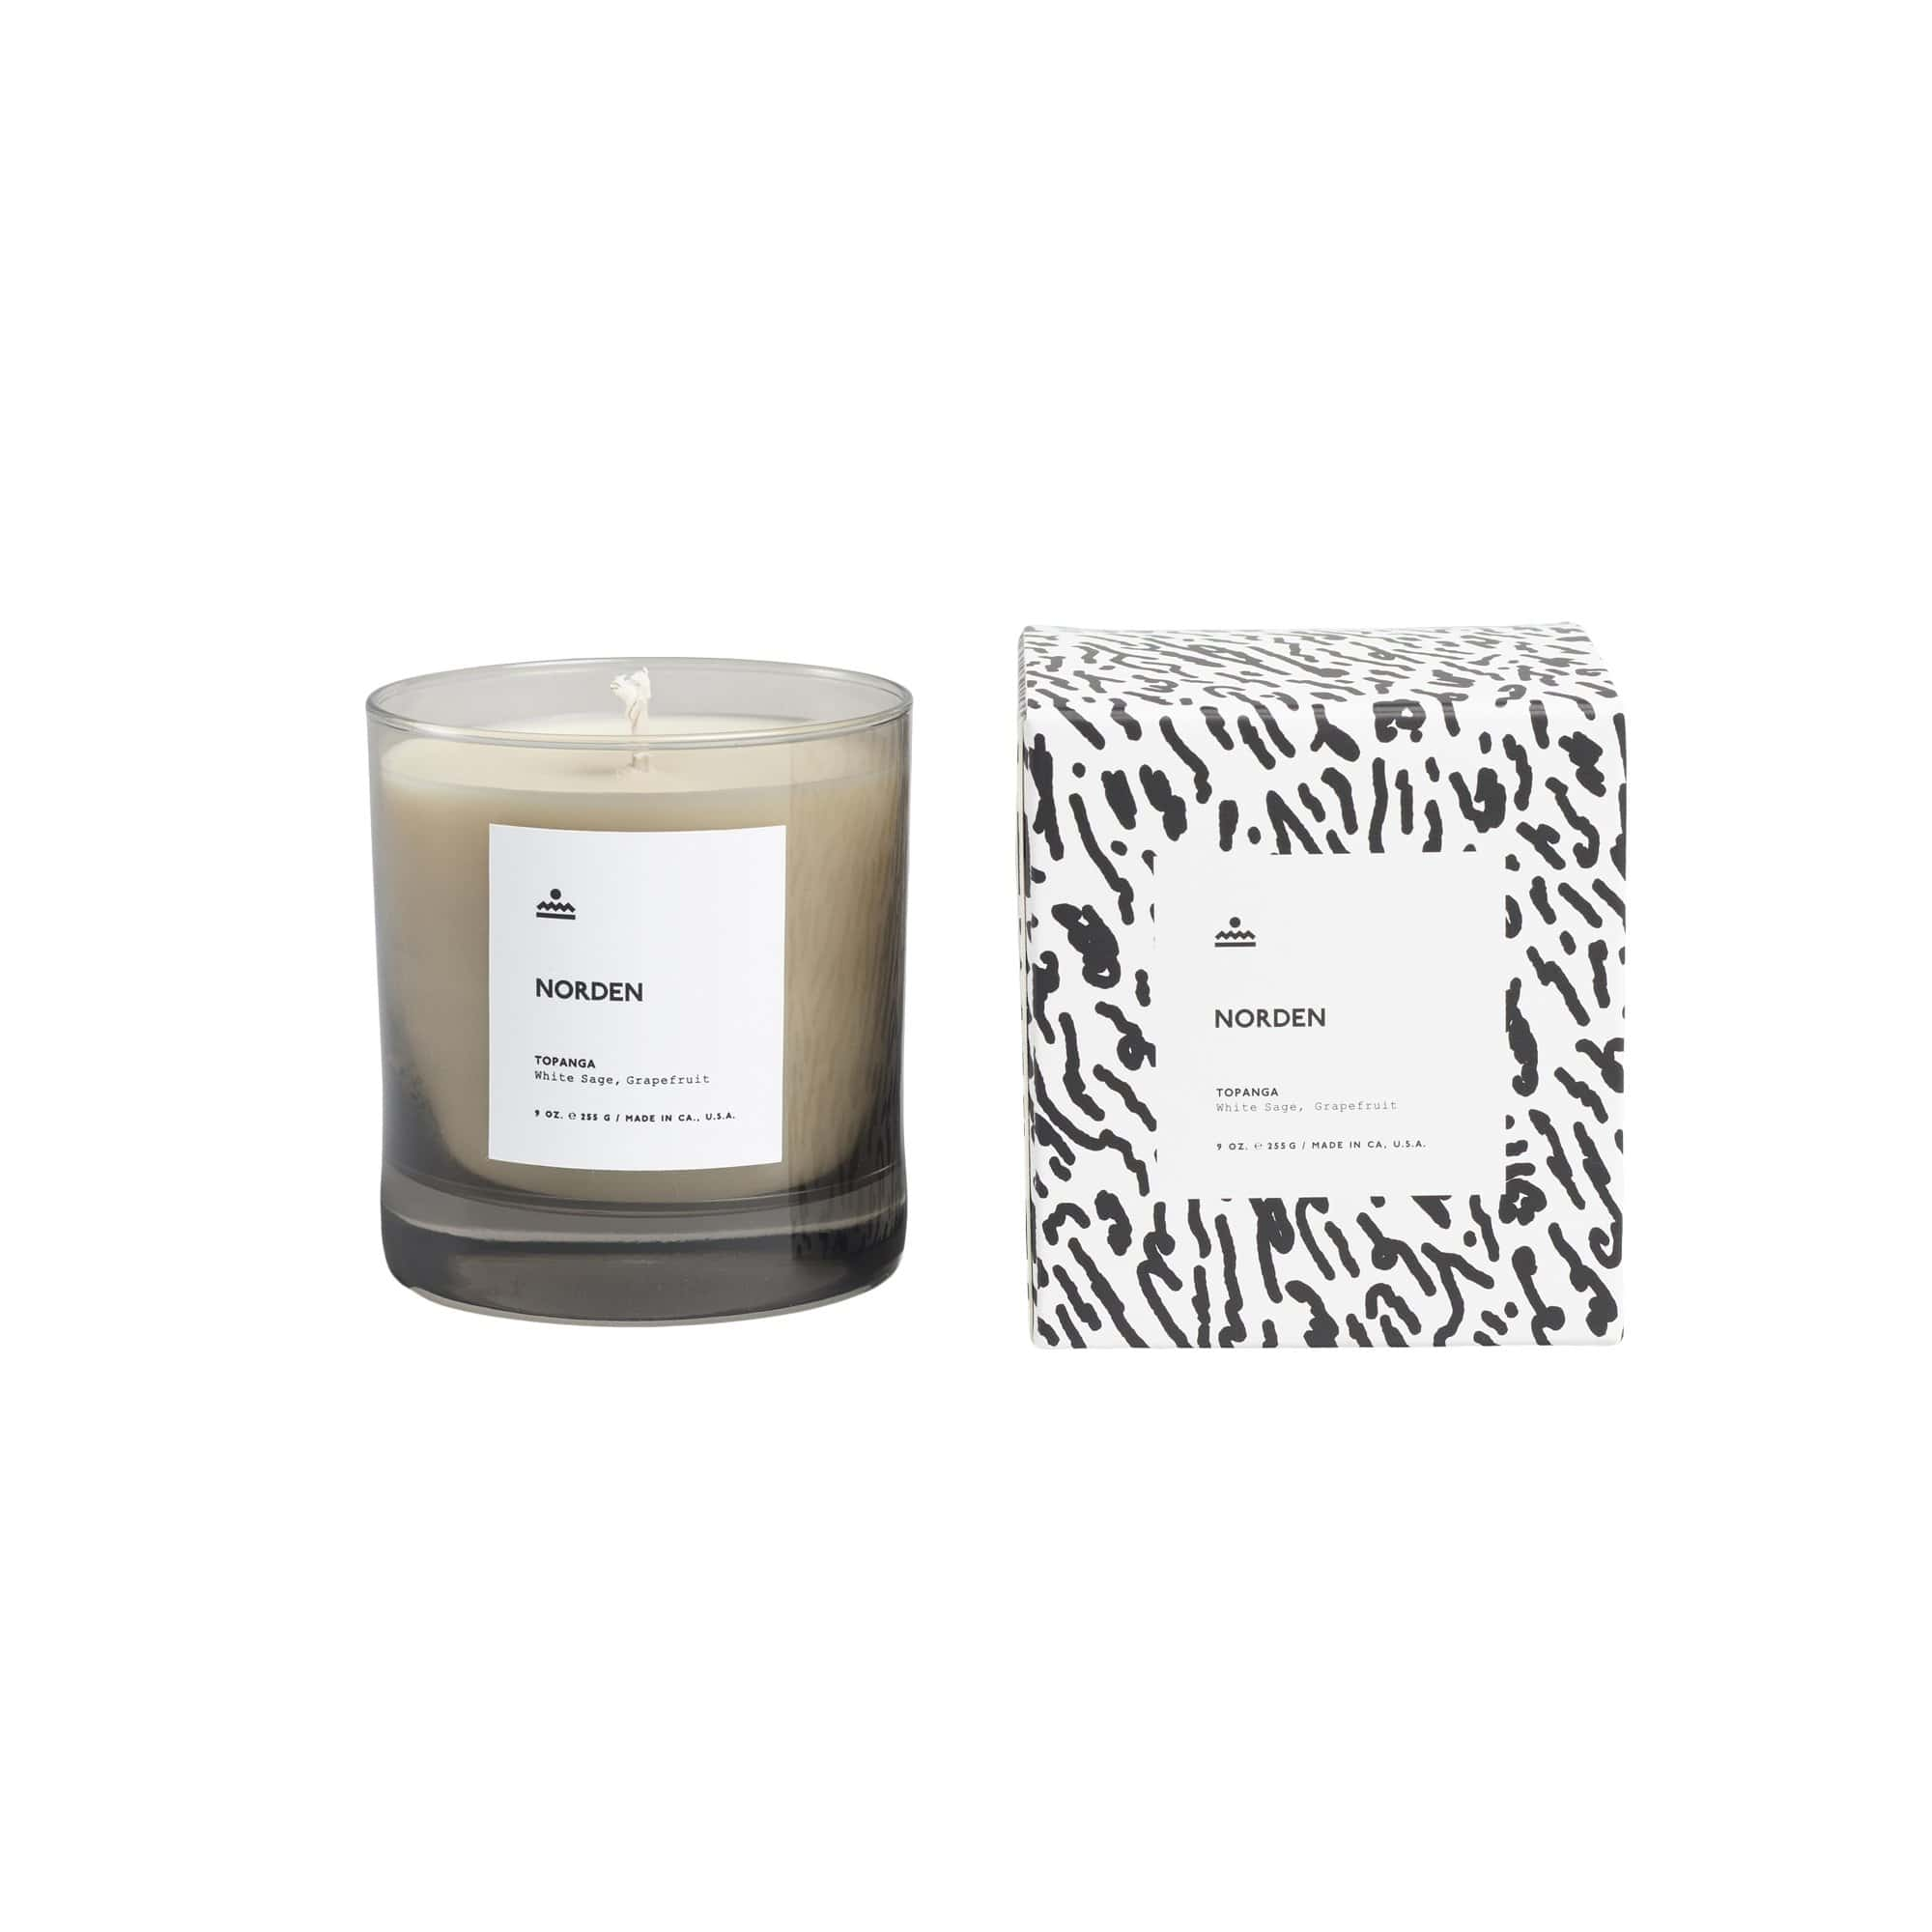 Norden Goods Candles, Diffusers + Incense Topanga 9 oz. Glass Candle